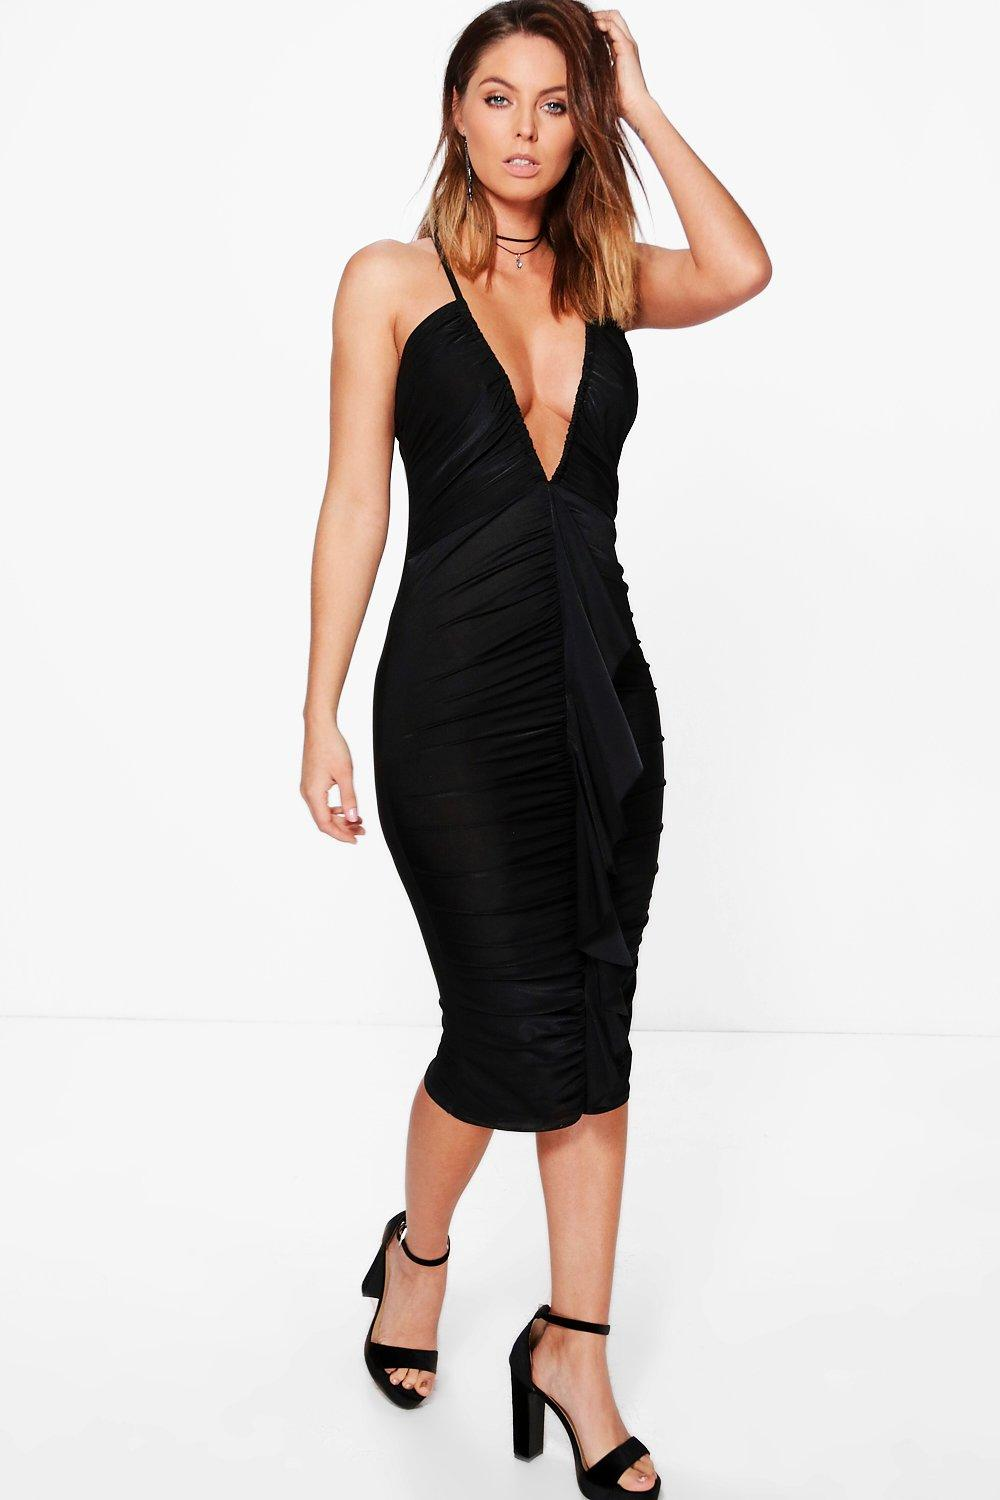 Immie Plunge Ruched Frill Slinky Midi Dress at boohoo.com